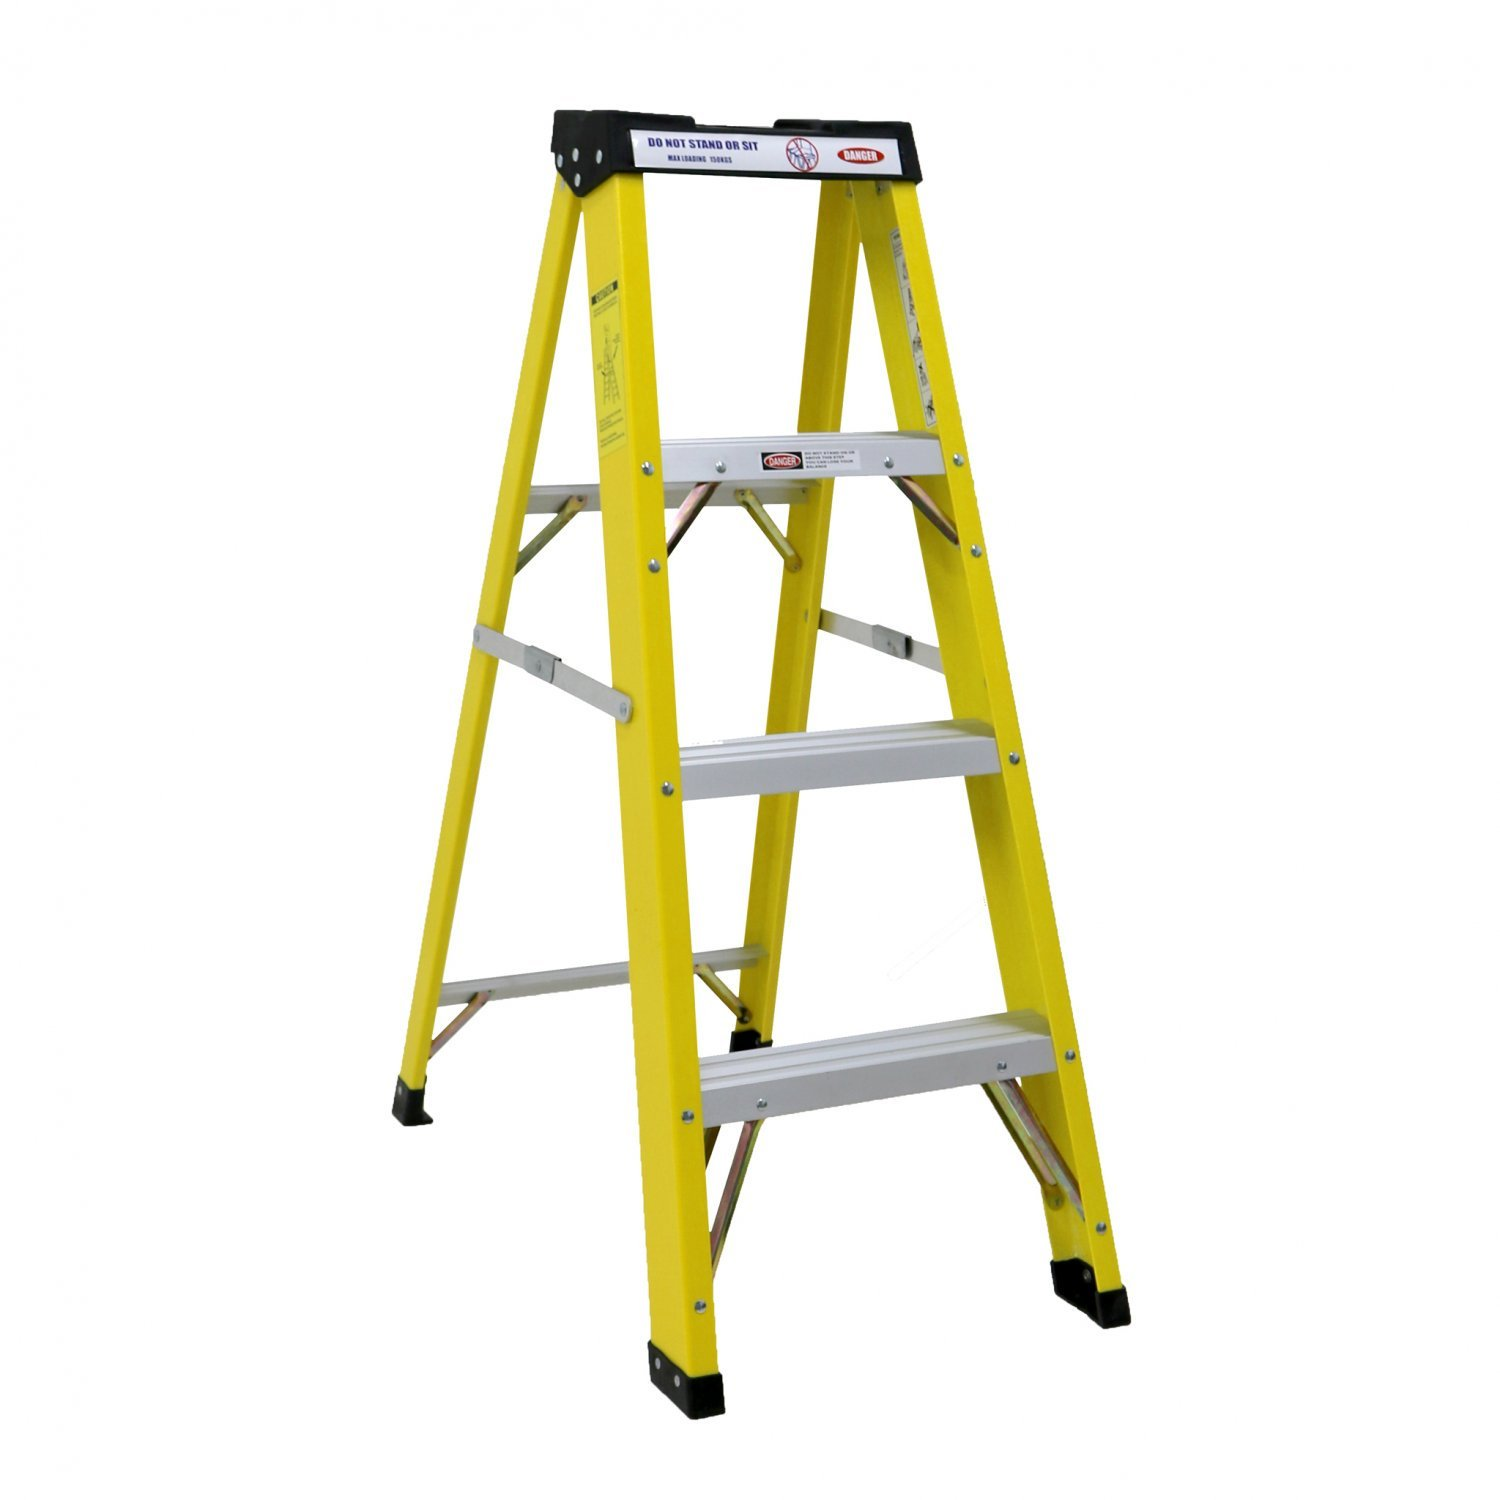 Oypla Fibreglass 4 tread Step Ladder Heavy Duty Electrician's Professional-Grade 30, 000V Rated OYP3402